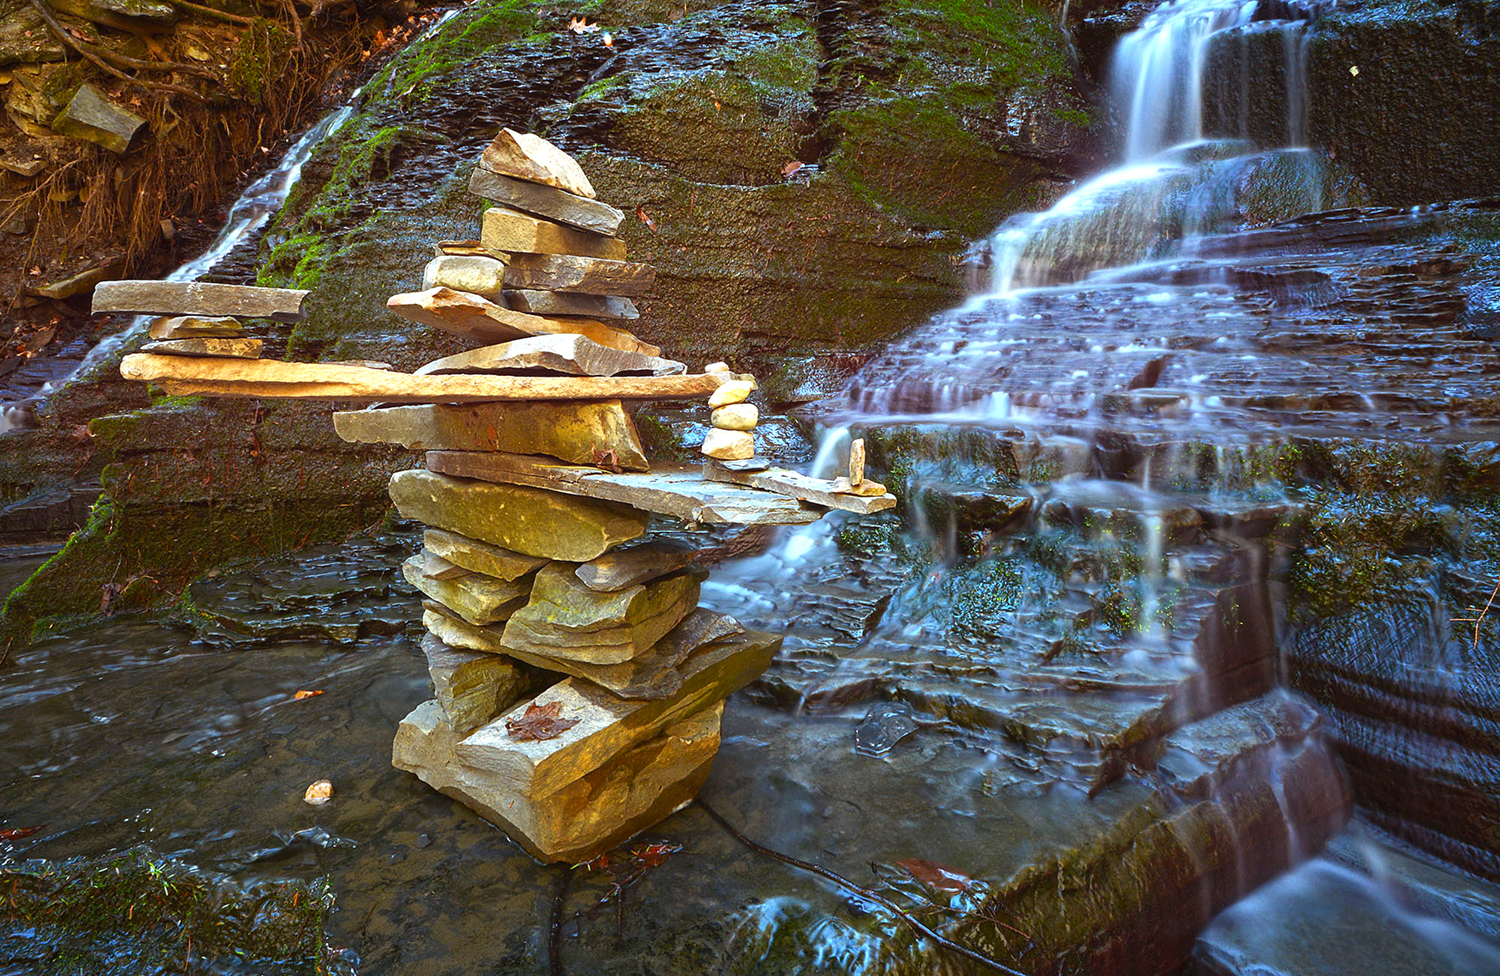 There are several impromptu sculptures like this in the ravine. This one is at the foot of the 40-foot Rynex Creek Falls. © Dave Kraus